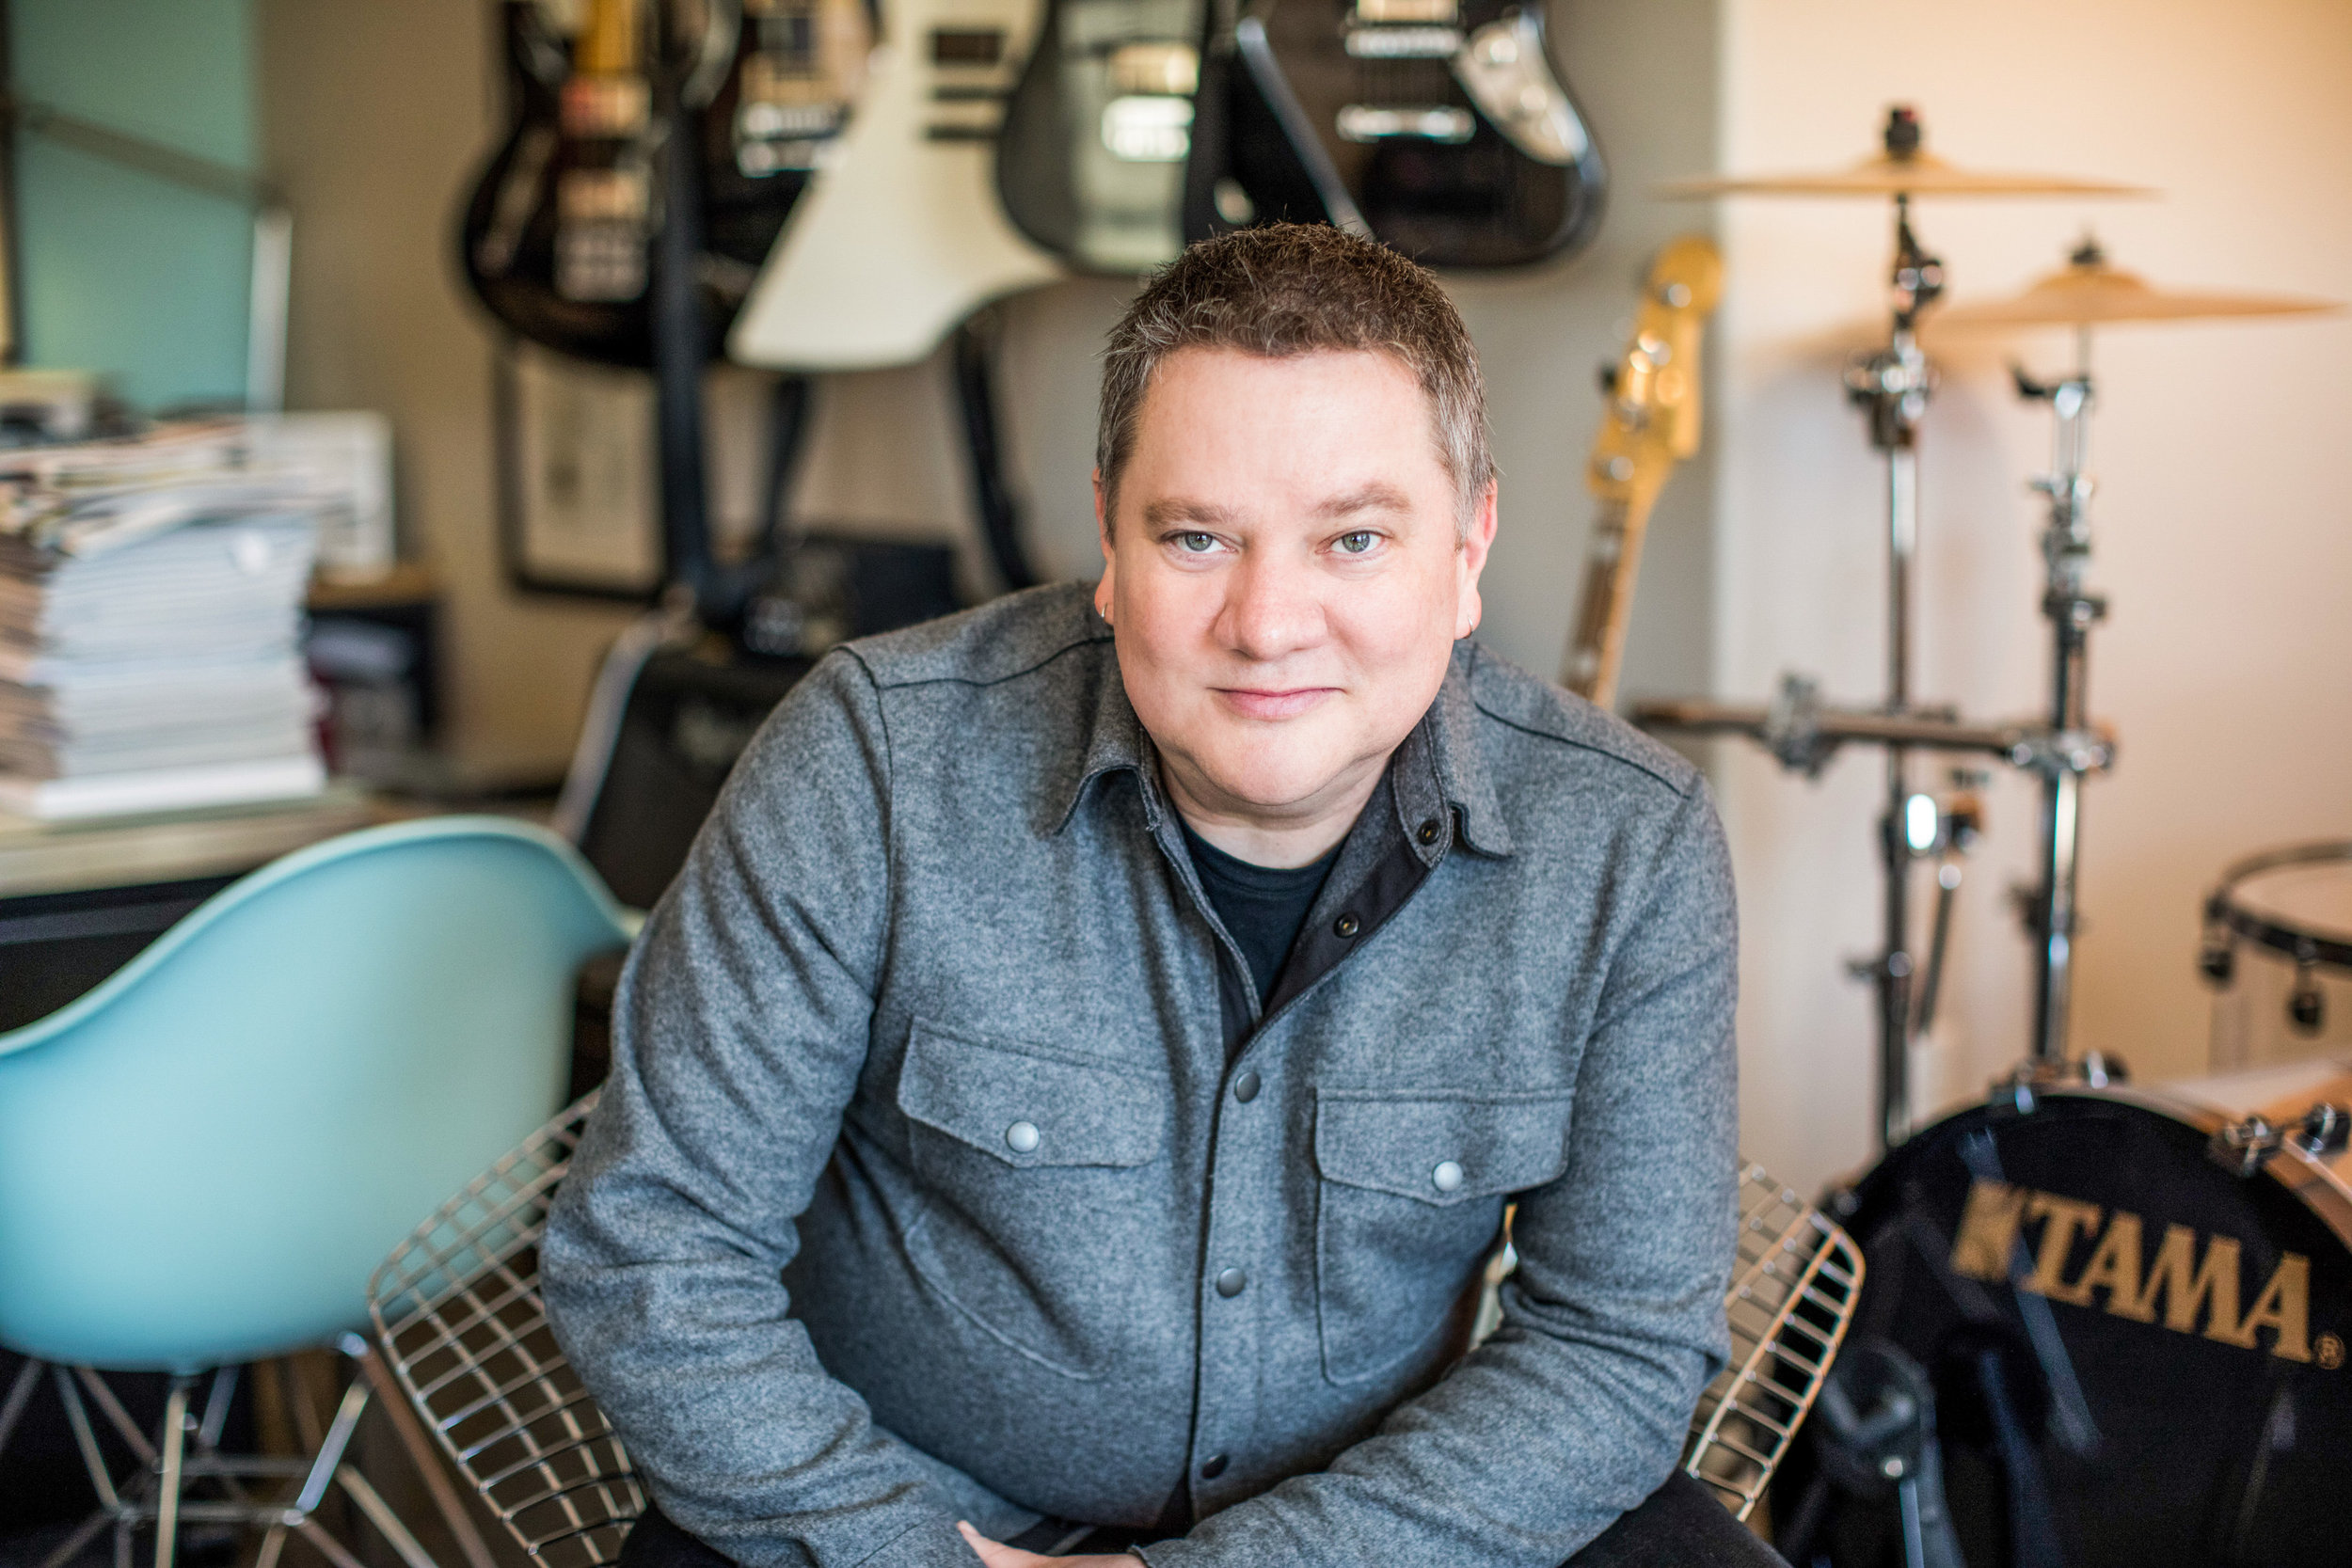 KURT KERNS / PRINCIPAL - Bachelor of Architecture, Kansas State University